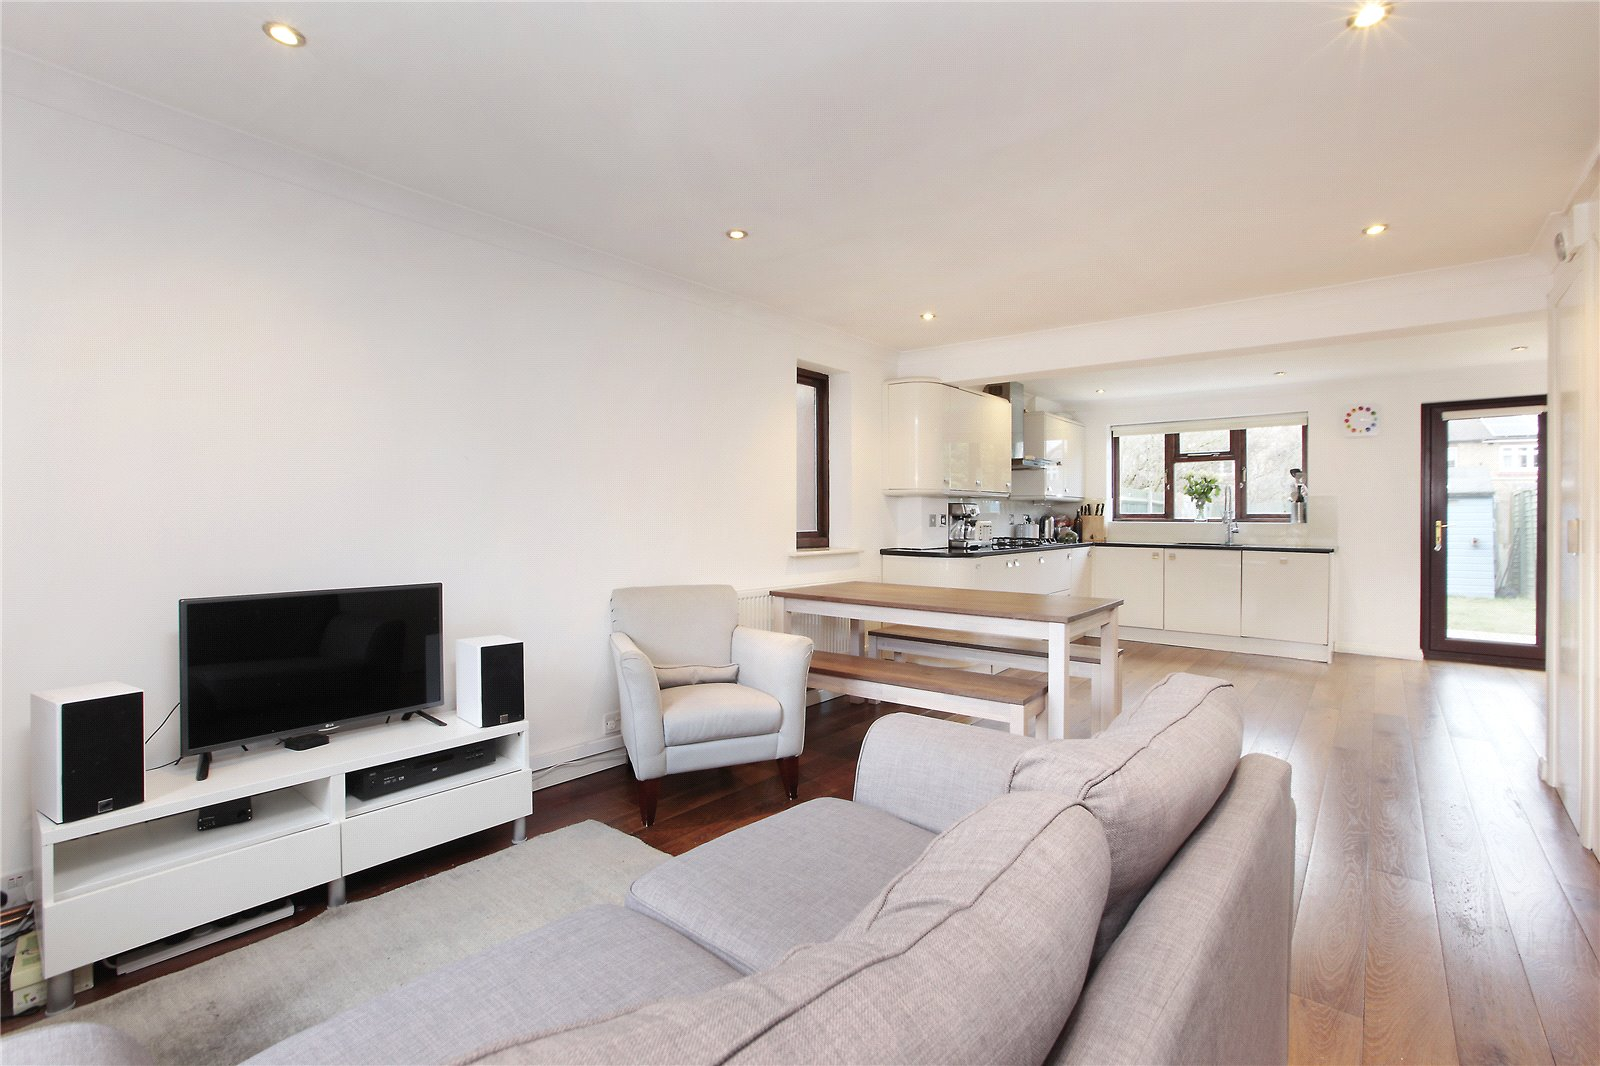 3 Bedrooms Semi Detached House for sale in Rosethorn Close, Balham, London, SW12